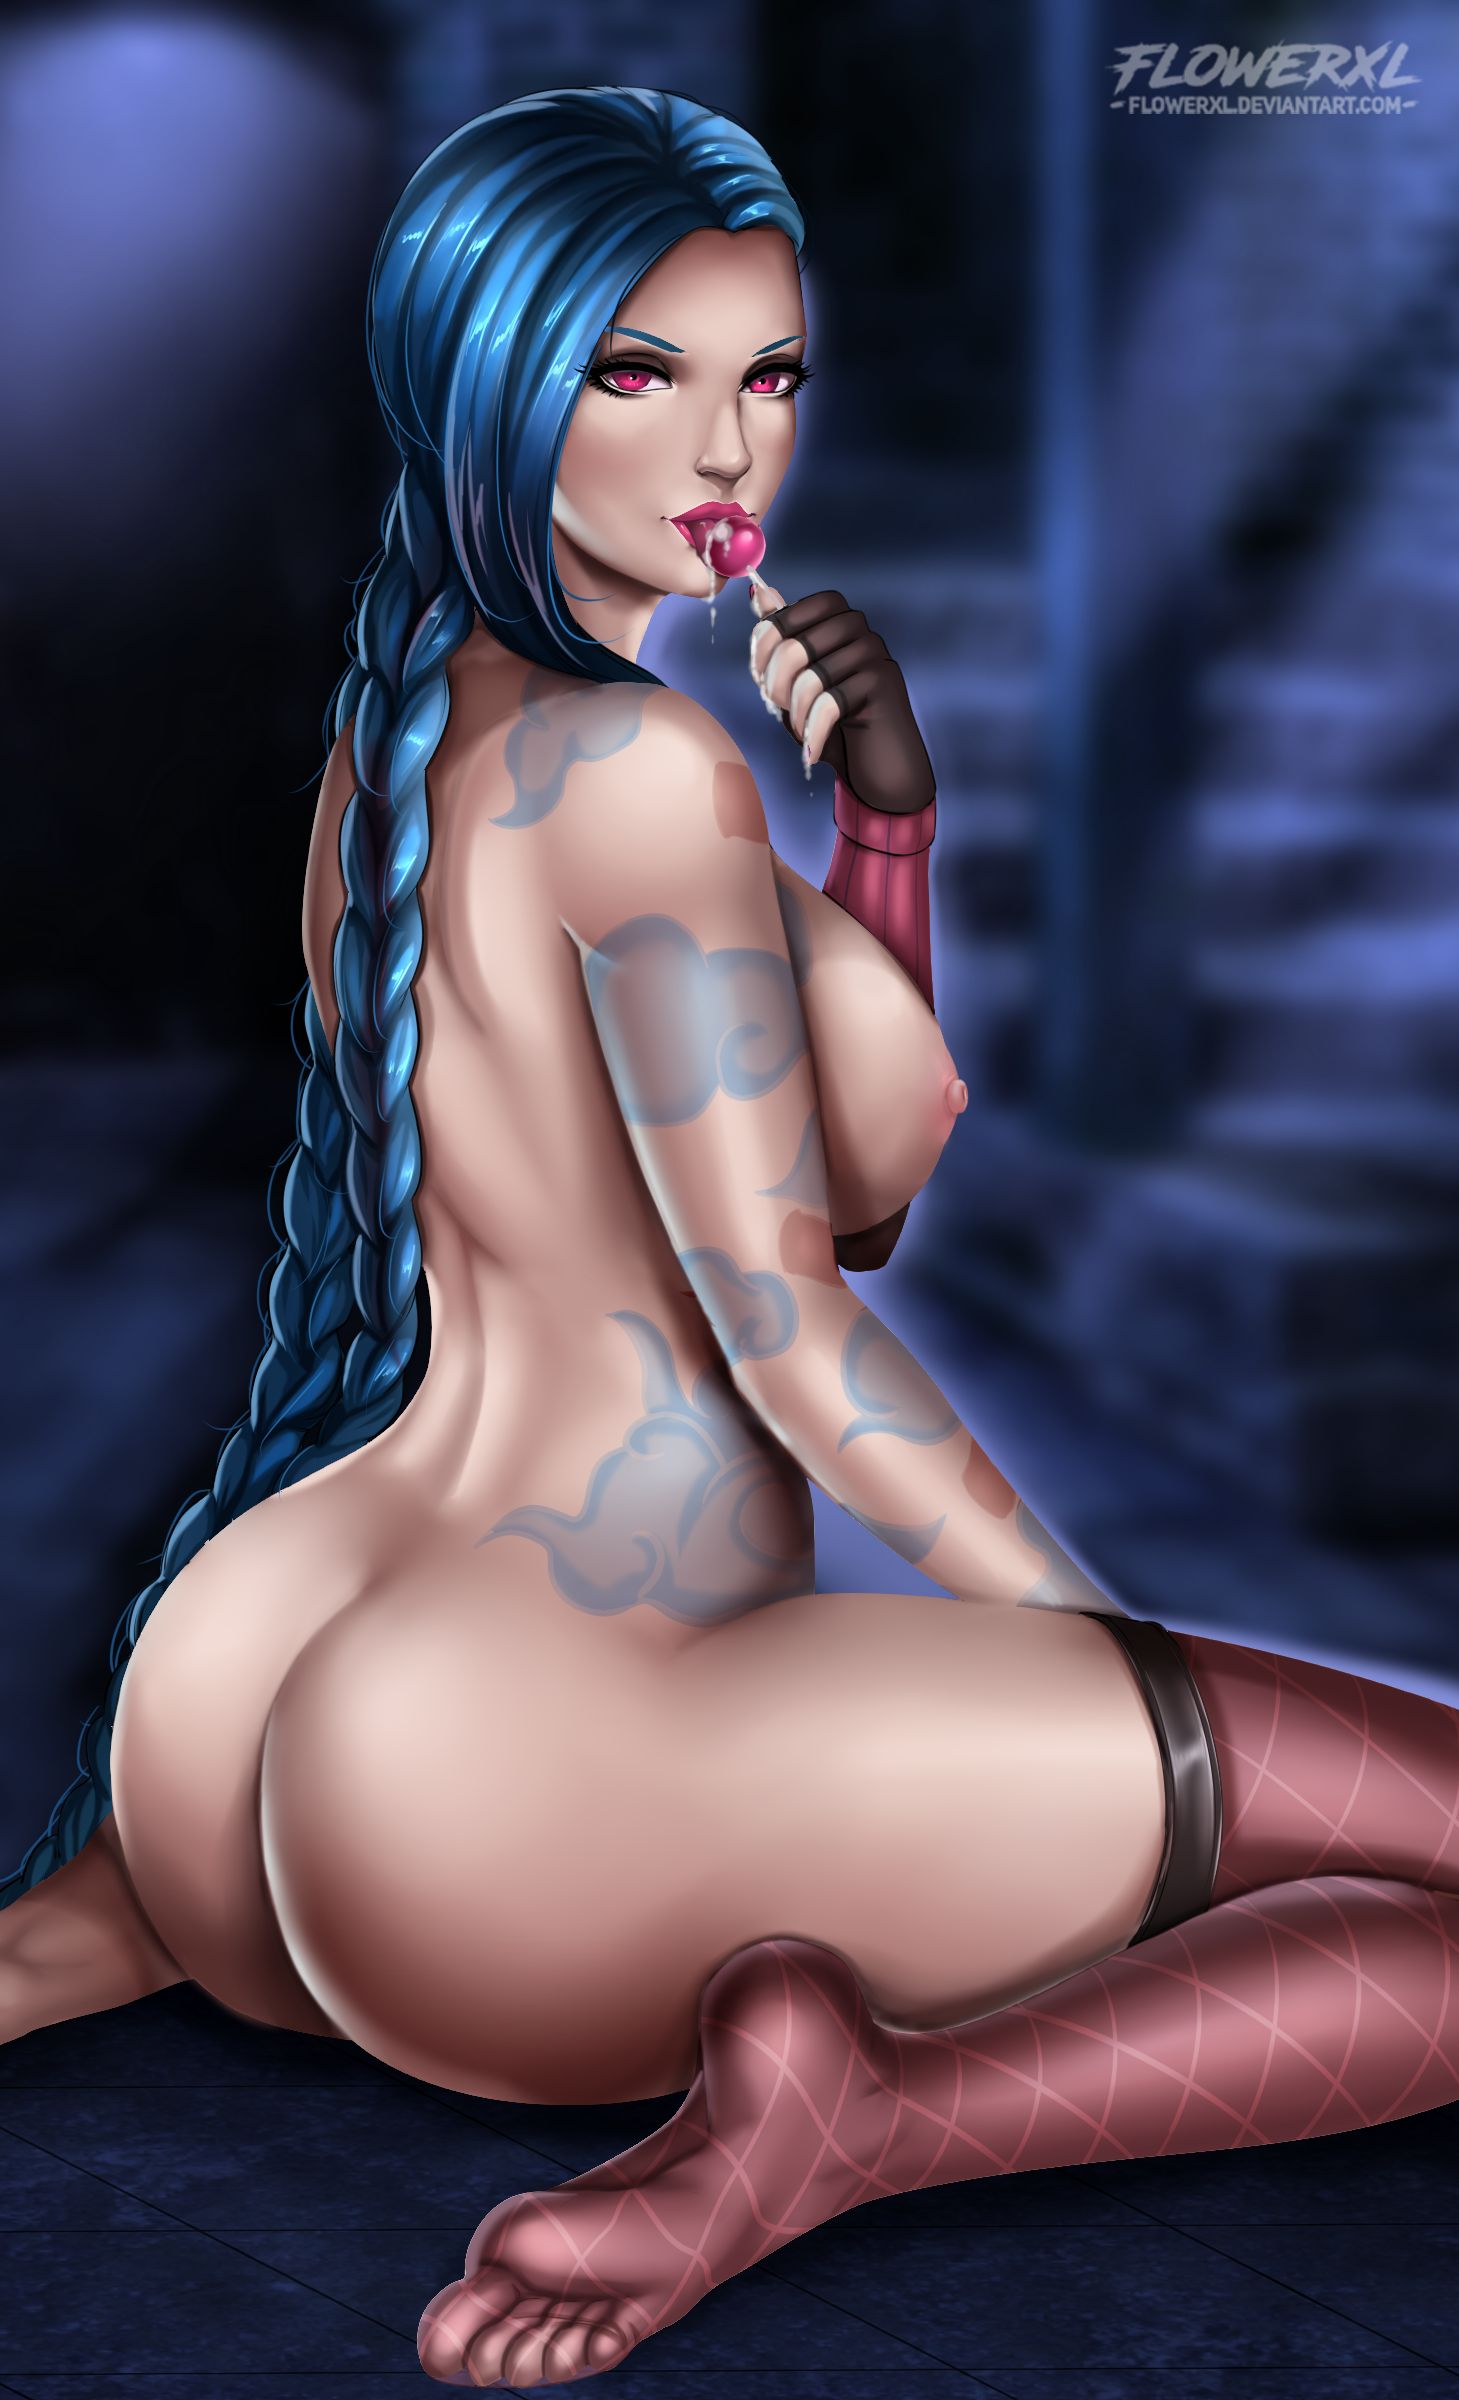 1girl areolae ass big_ass big_breasts breasts dat_ass feet female female_only flowerxl jinx_(league_of_legends) large_breasts league_of_legends looking_at_viewer looking_back nipples solo thighhighs